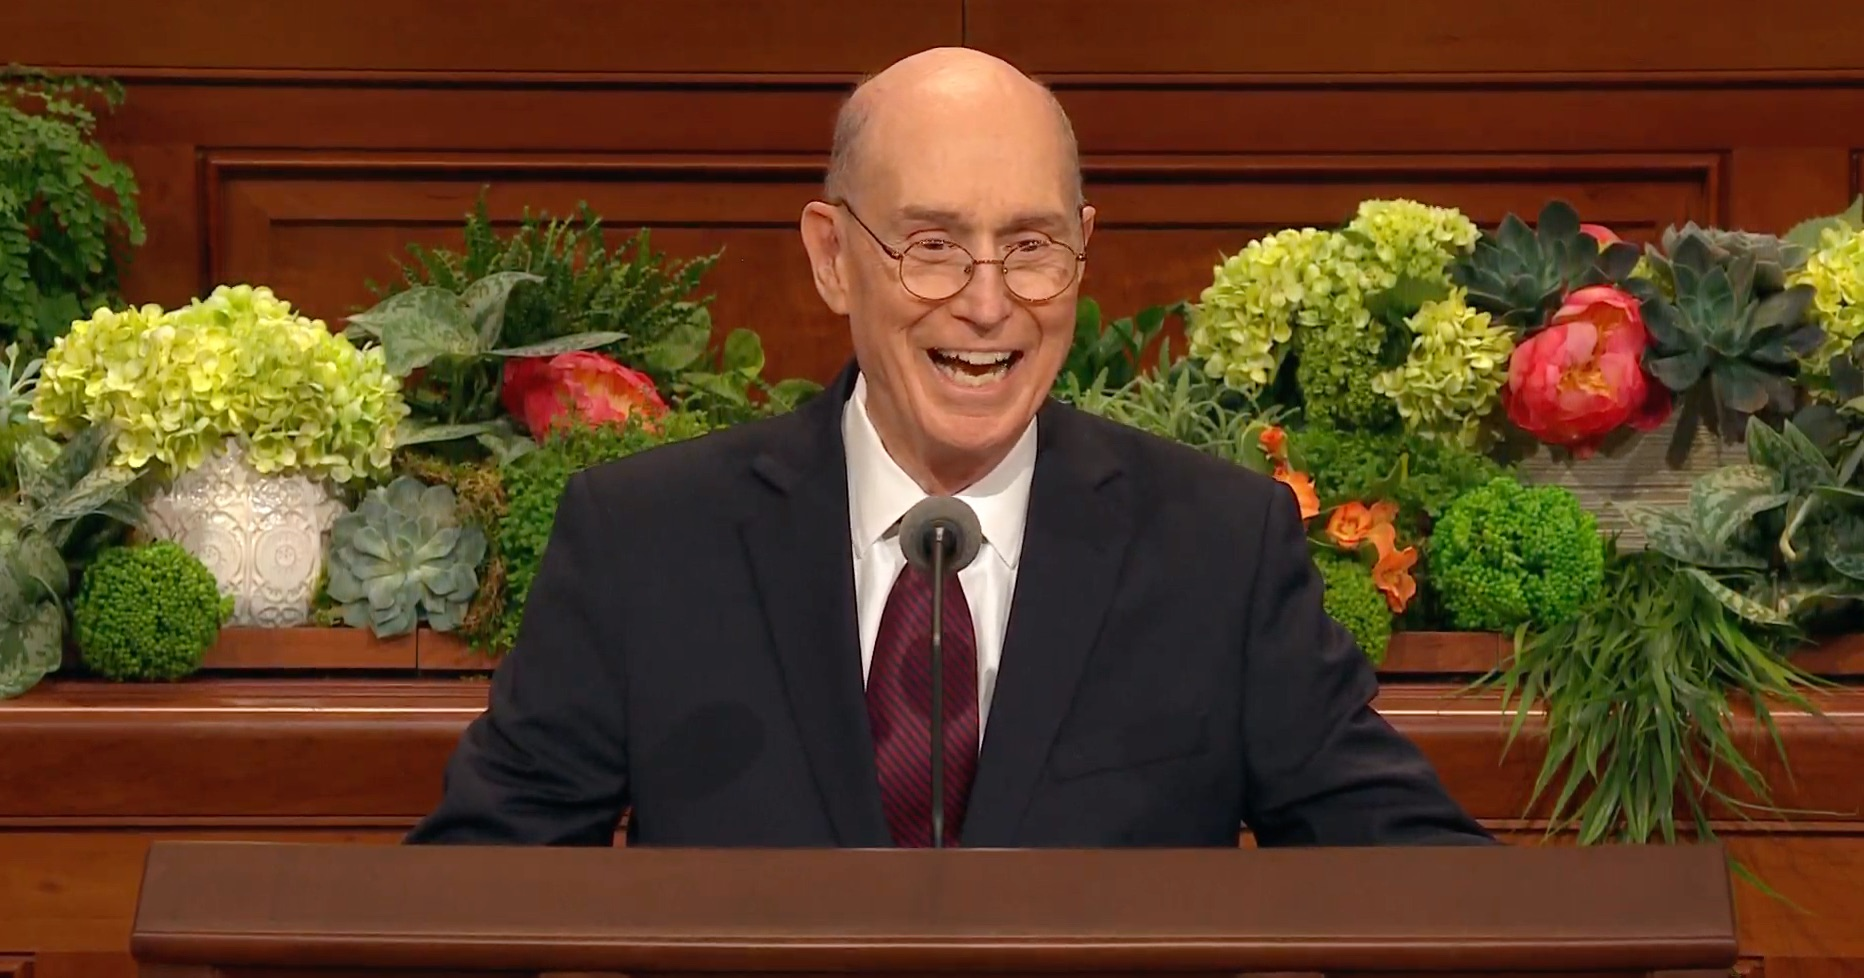 President Henry B. Eyring, second counselor in the First Presidency, speaks during the priesthood session of the 189th Annual General Conference on April 6, 2019.